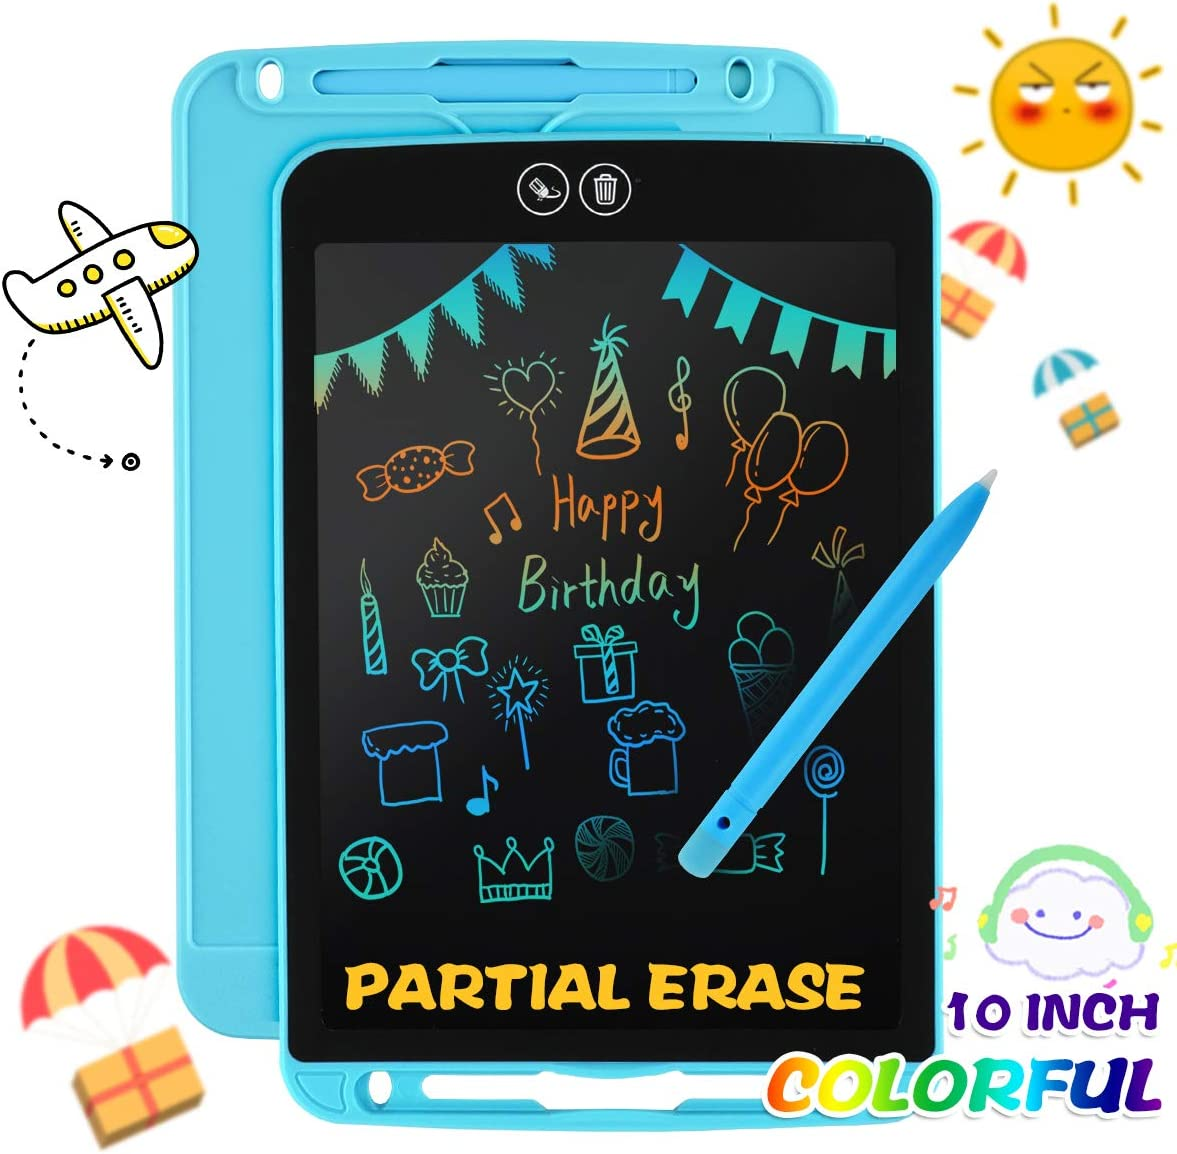 APLUGTEK LCD Writing Tablet, 10 inch Partial Erase Electronic Doodle Board, Portable Reusable Writing Pad, Colorful Screen Writing Board Gift for Kids Adult Home School Office, Blue